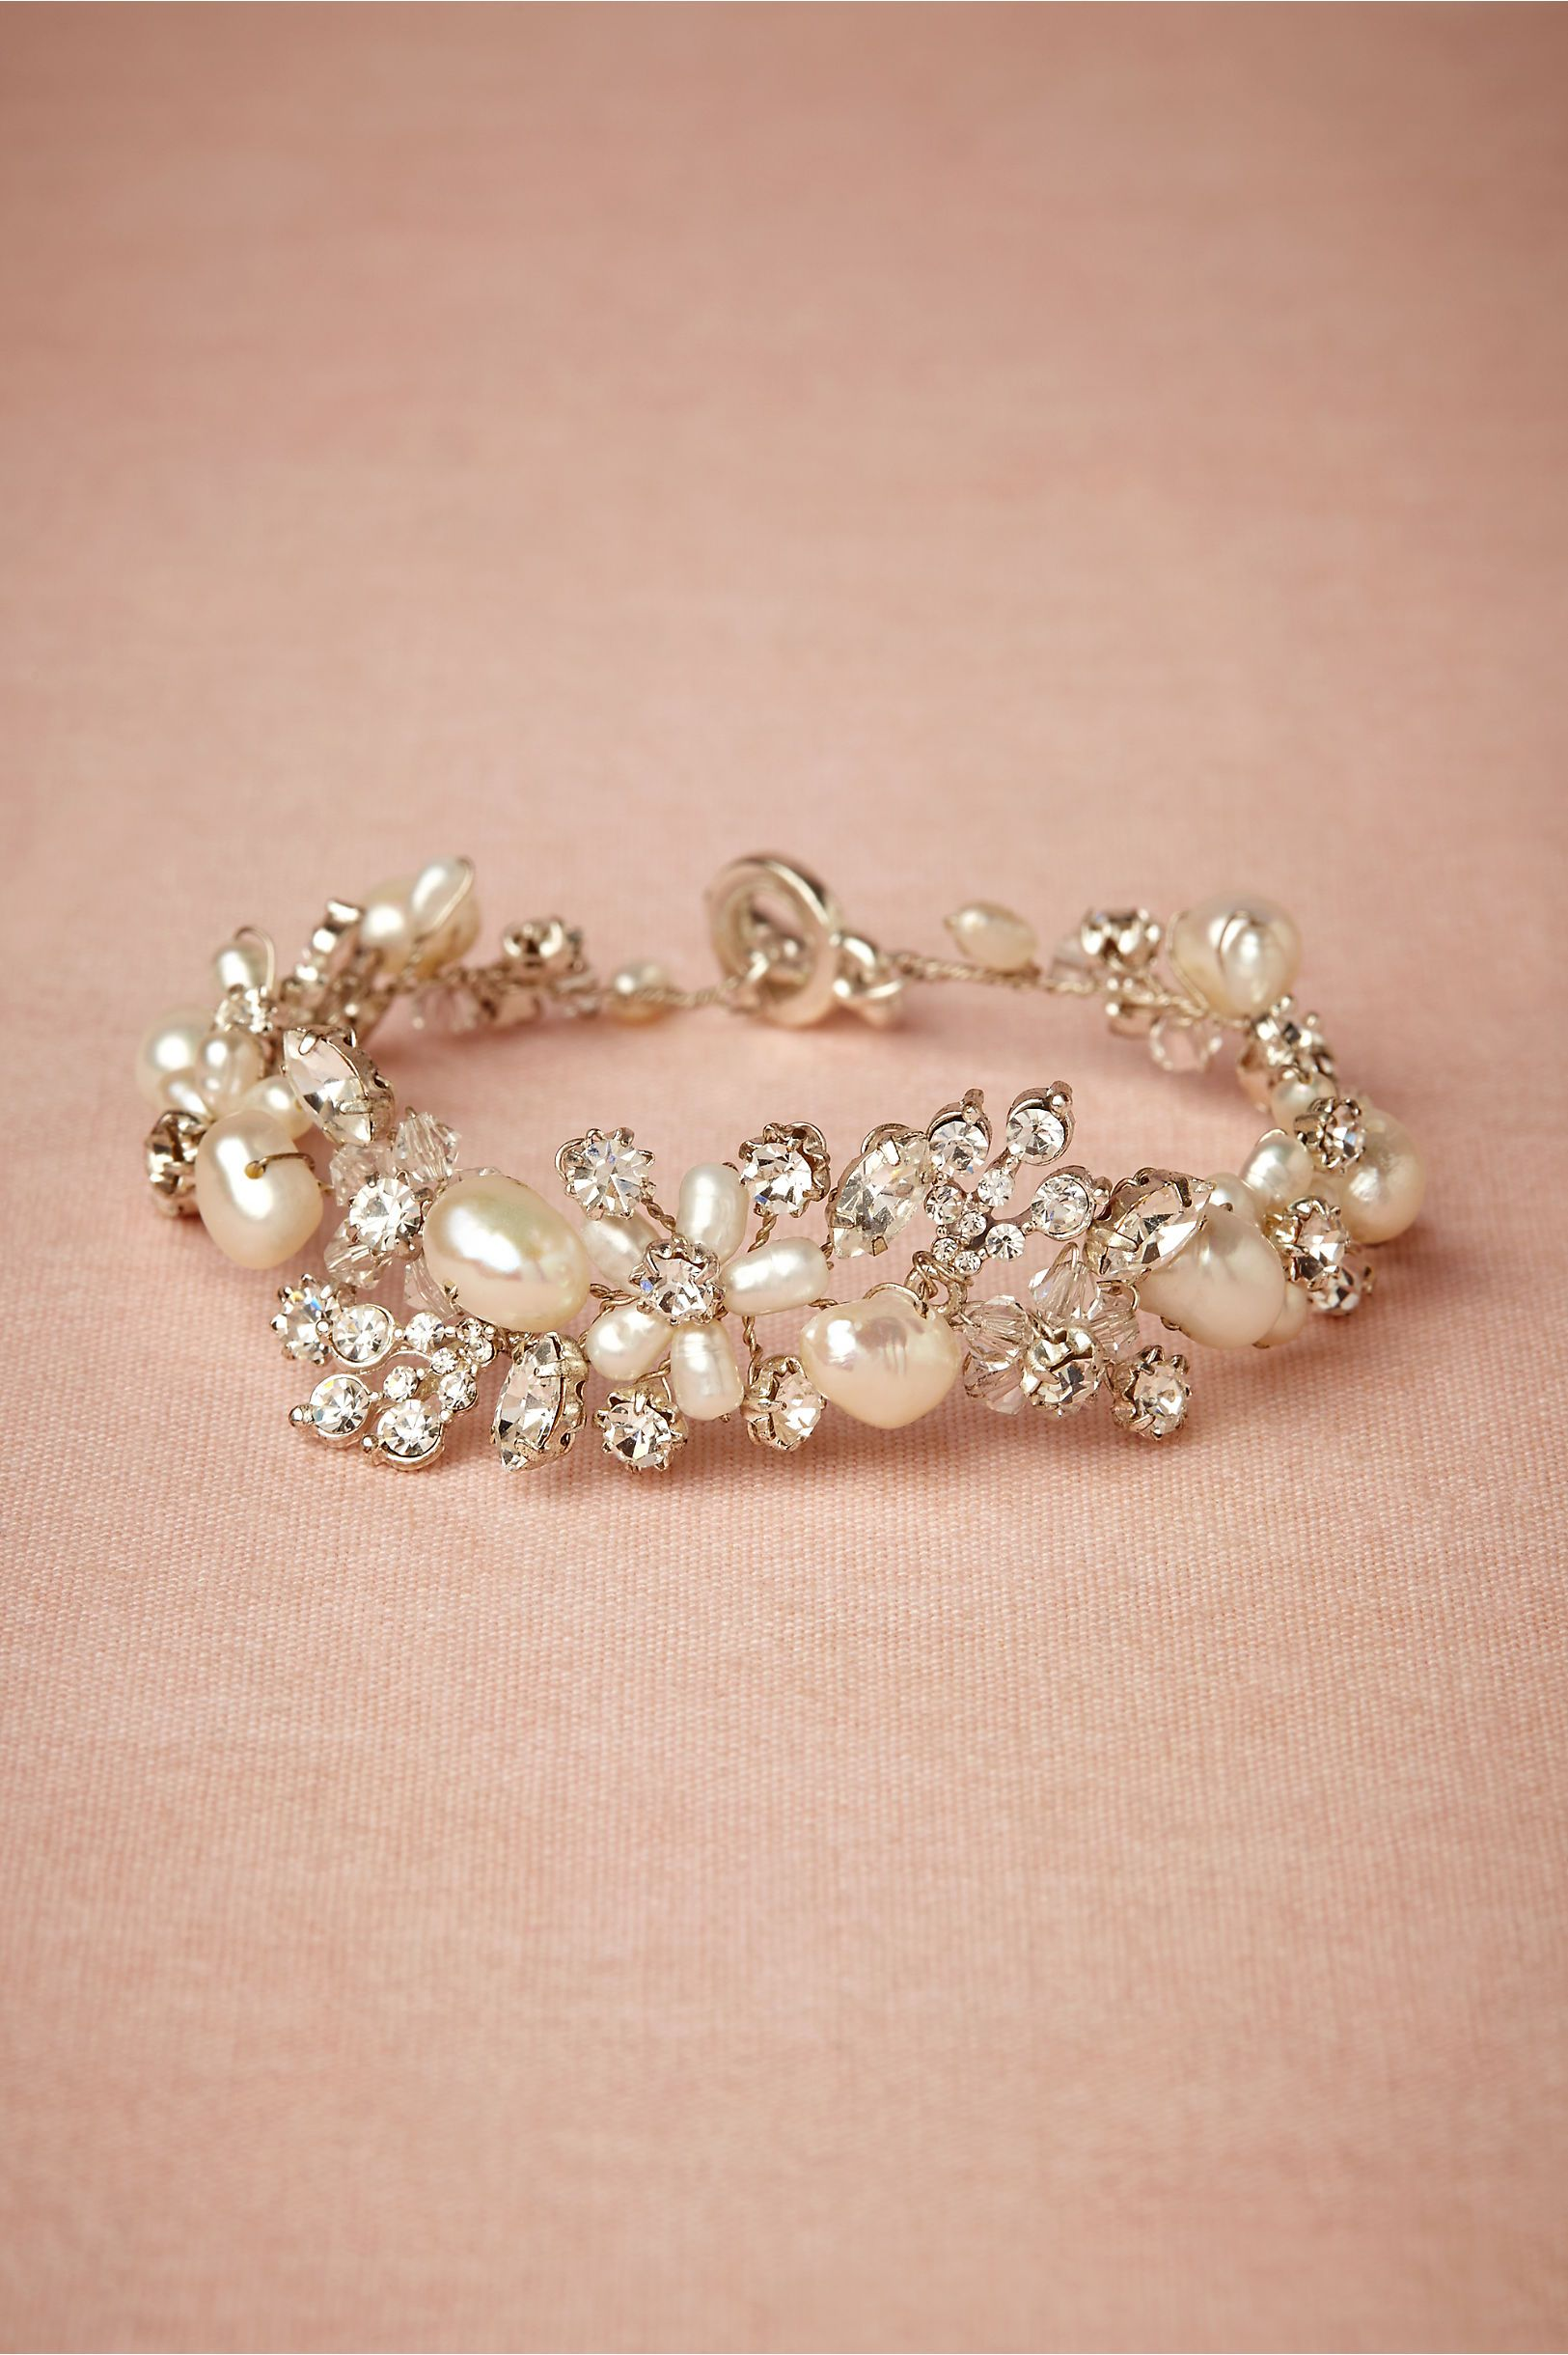 Nanette bracelet in bridal party u guests mothers at bhldn wedding